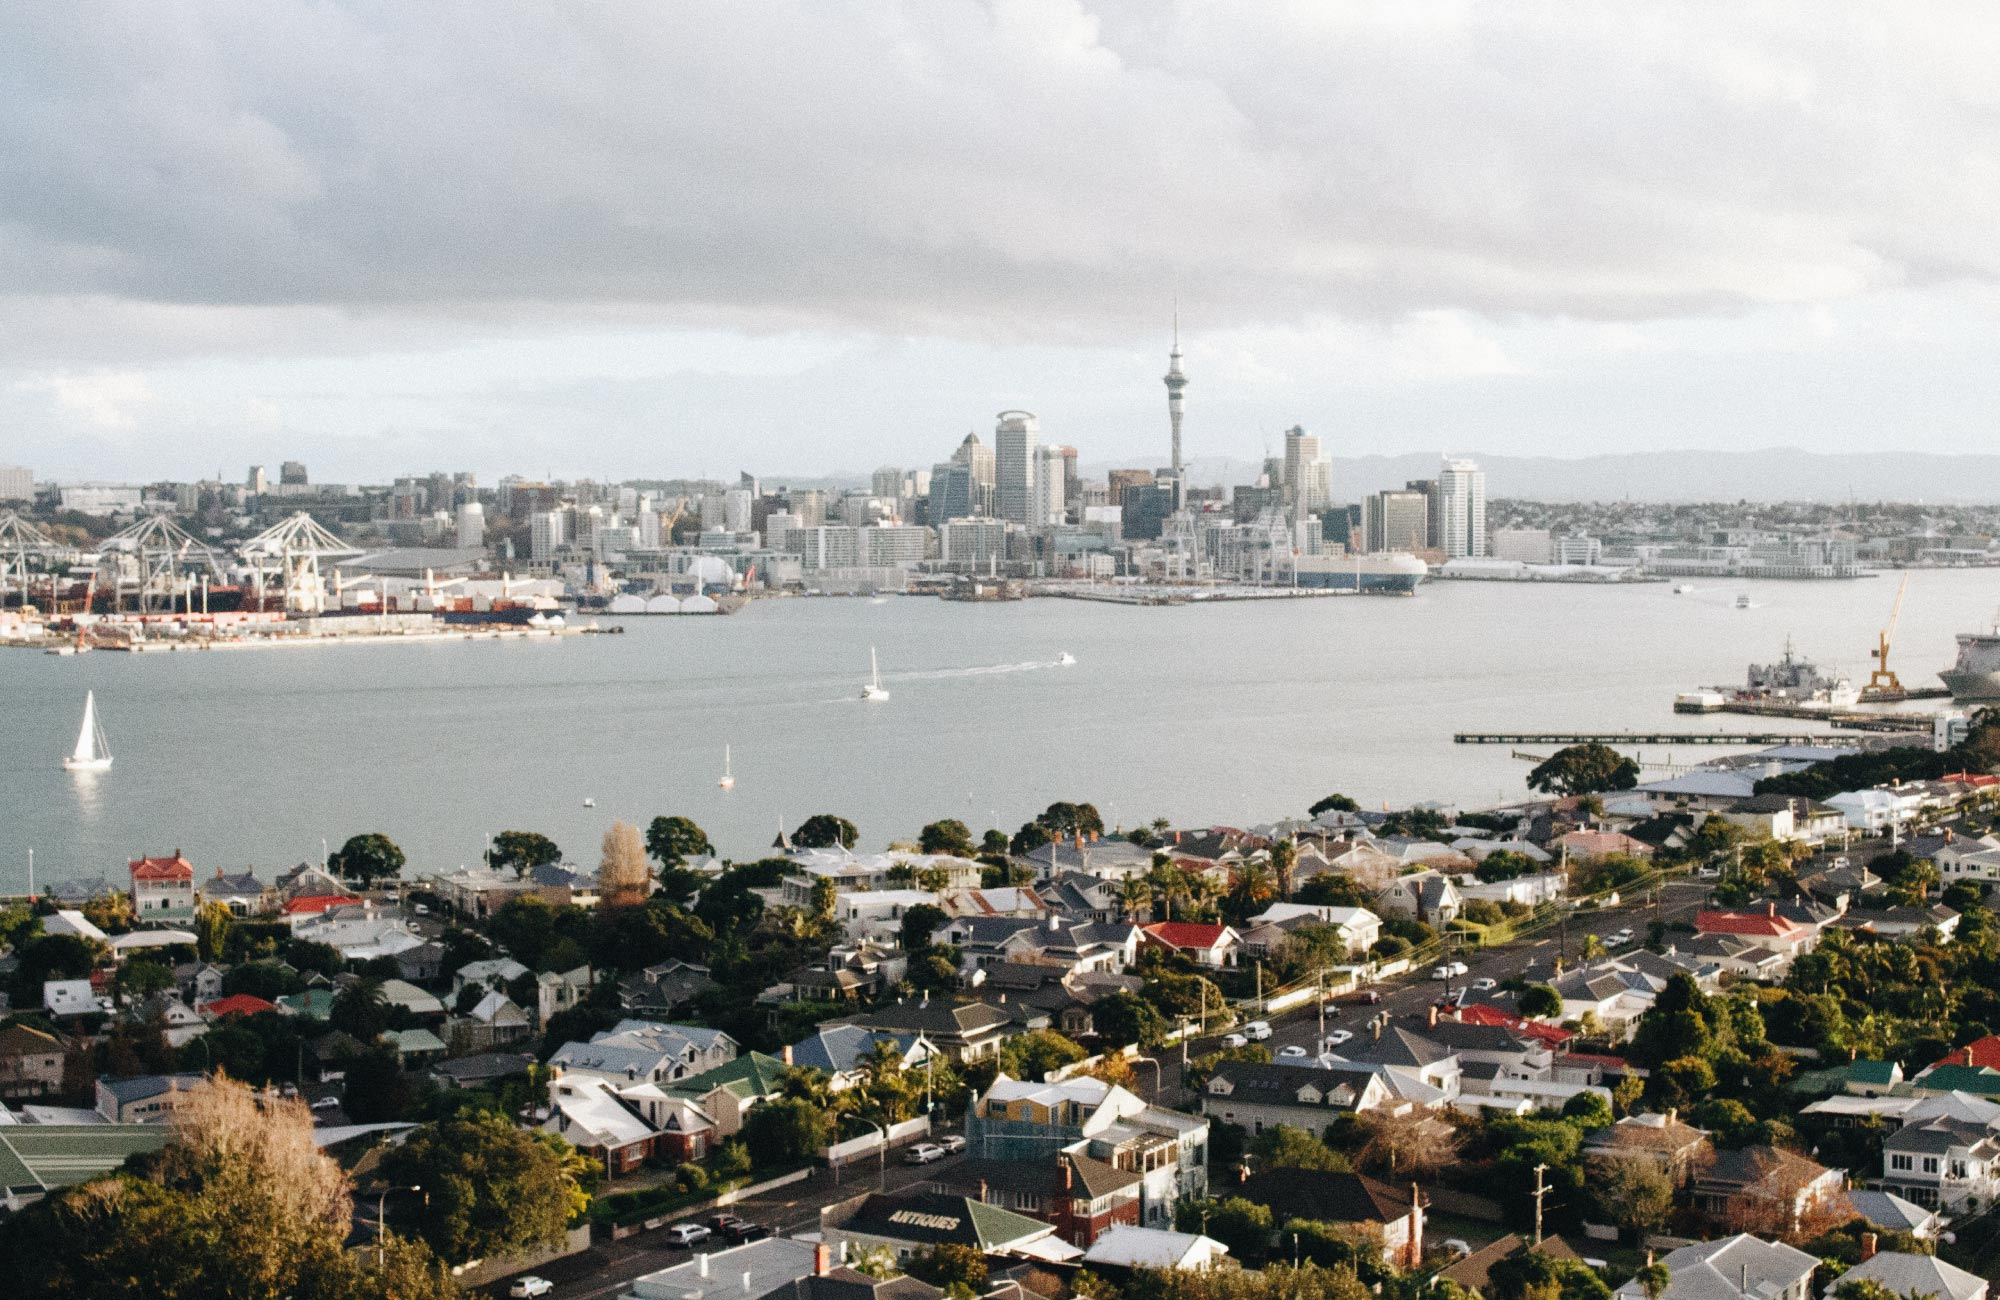 A cityscape of Auckland in New Zealand.